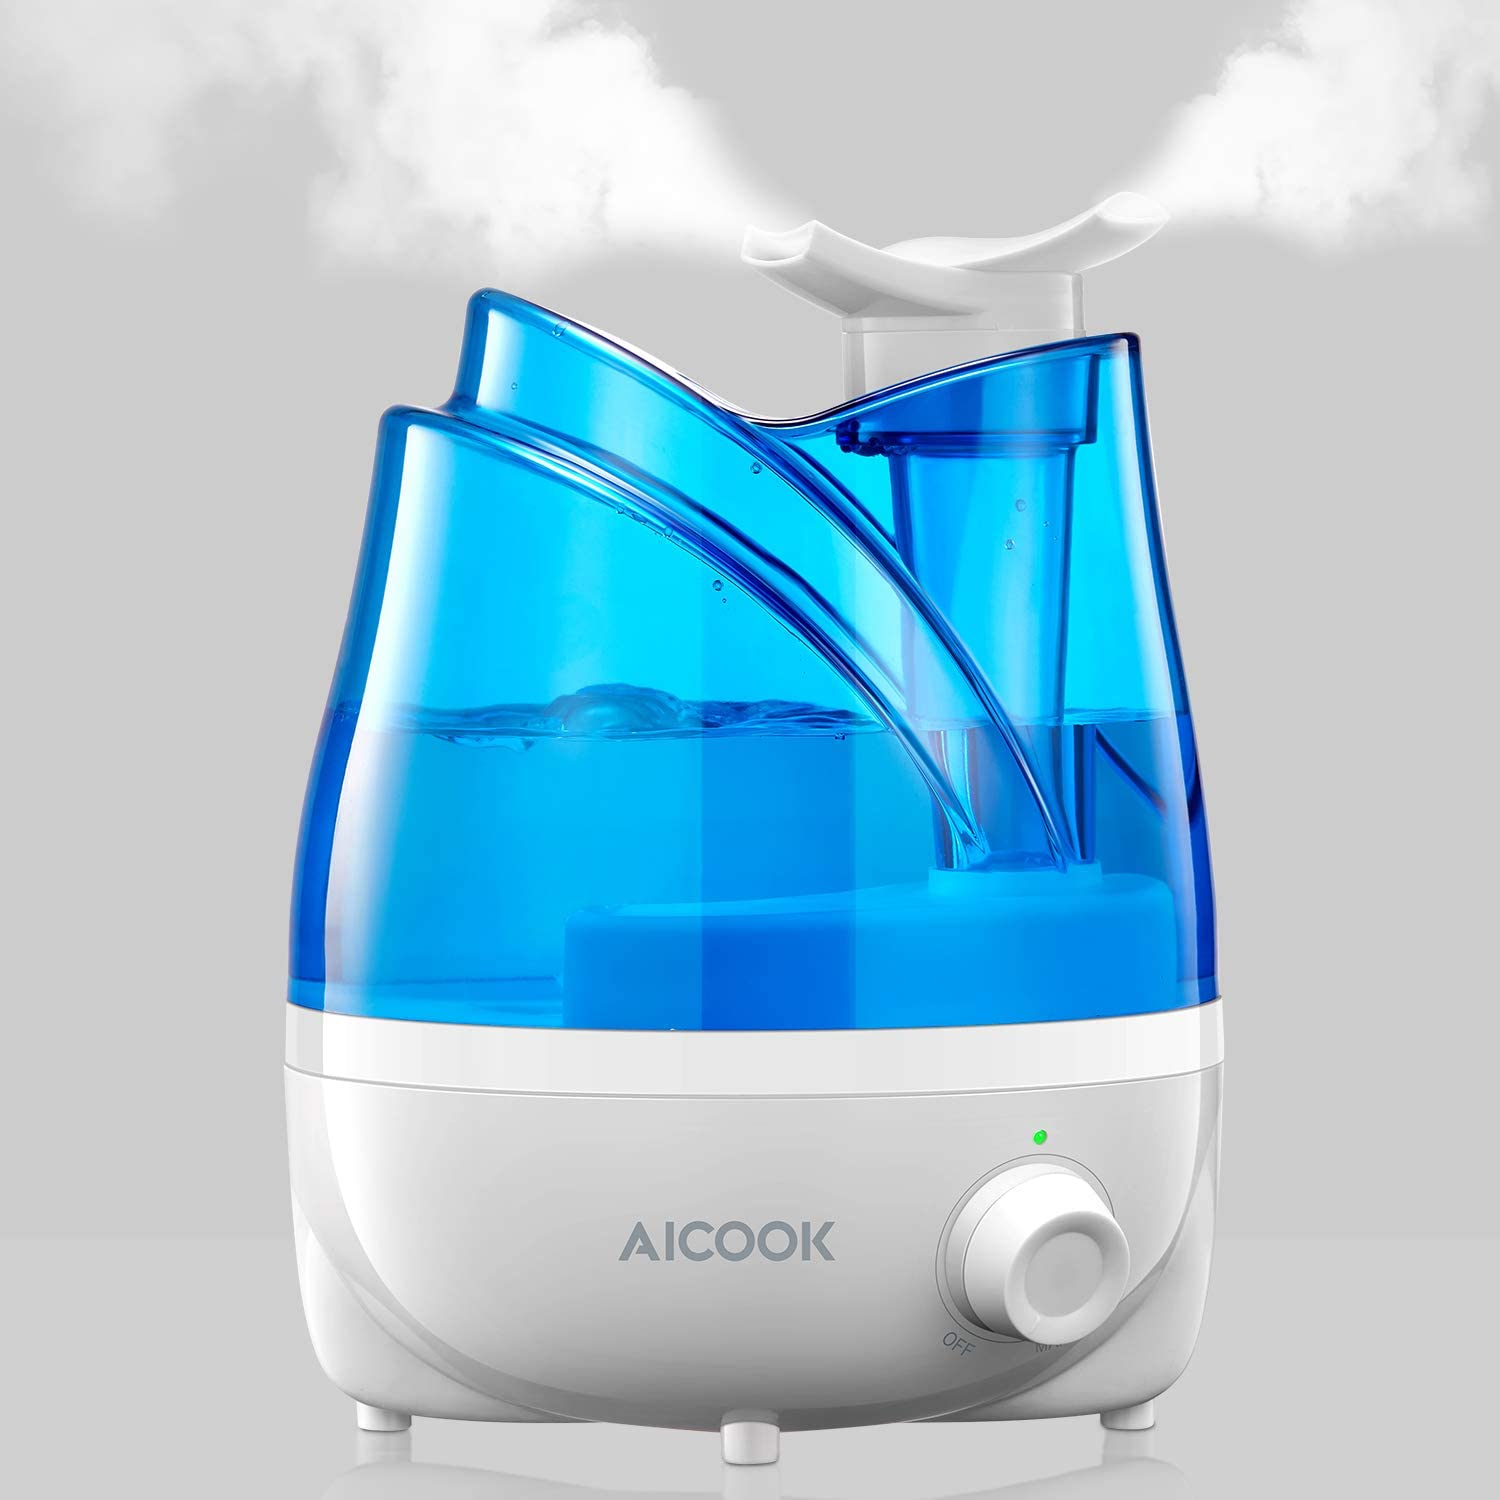 AICOOK Humidifier, Ultrasonic 30dB Cool Mist Humidifiers with Exclusive 360° Rotatable Double Nozzles, Quiet for Bedroom Babyroom Liveroom, 24 Hours